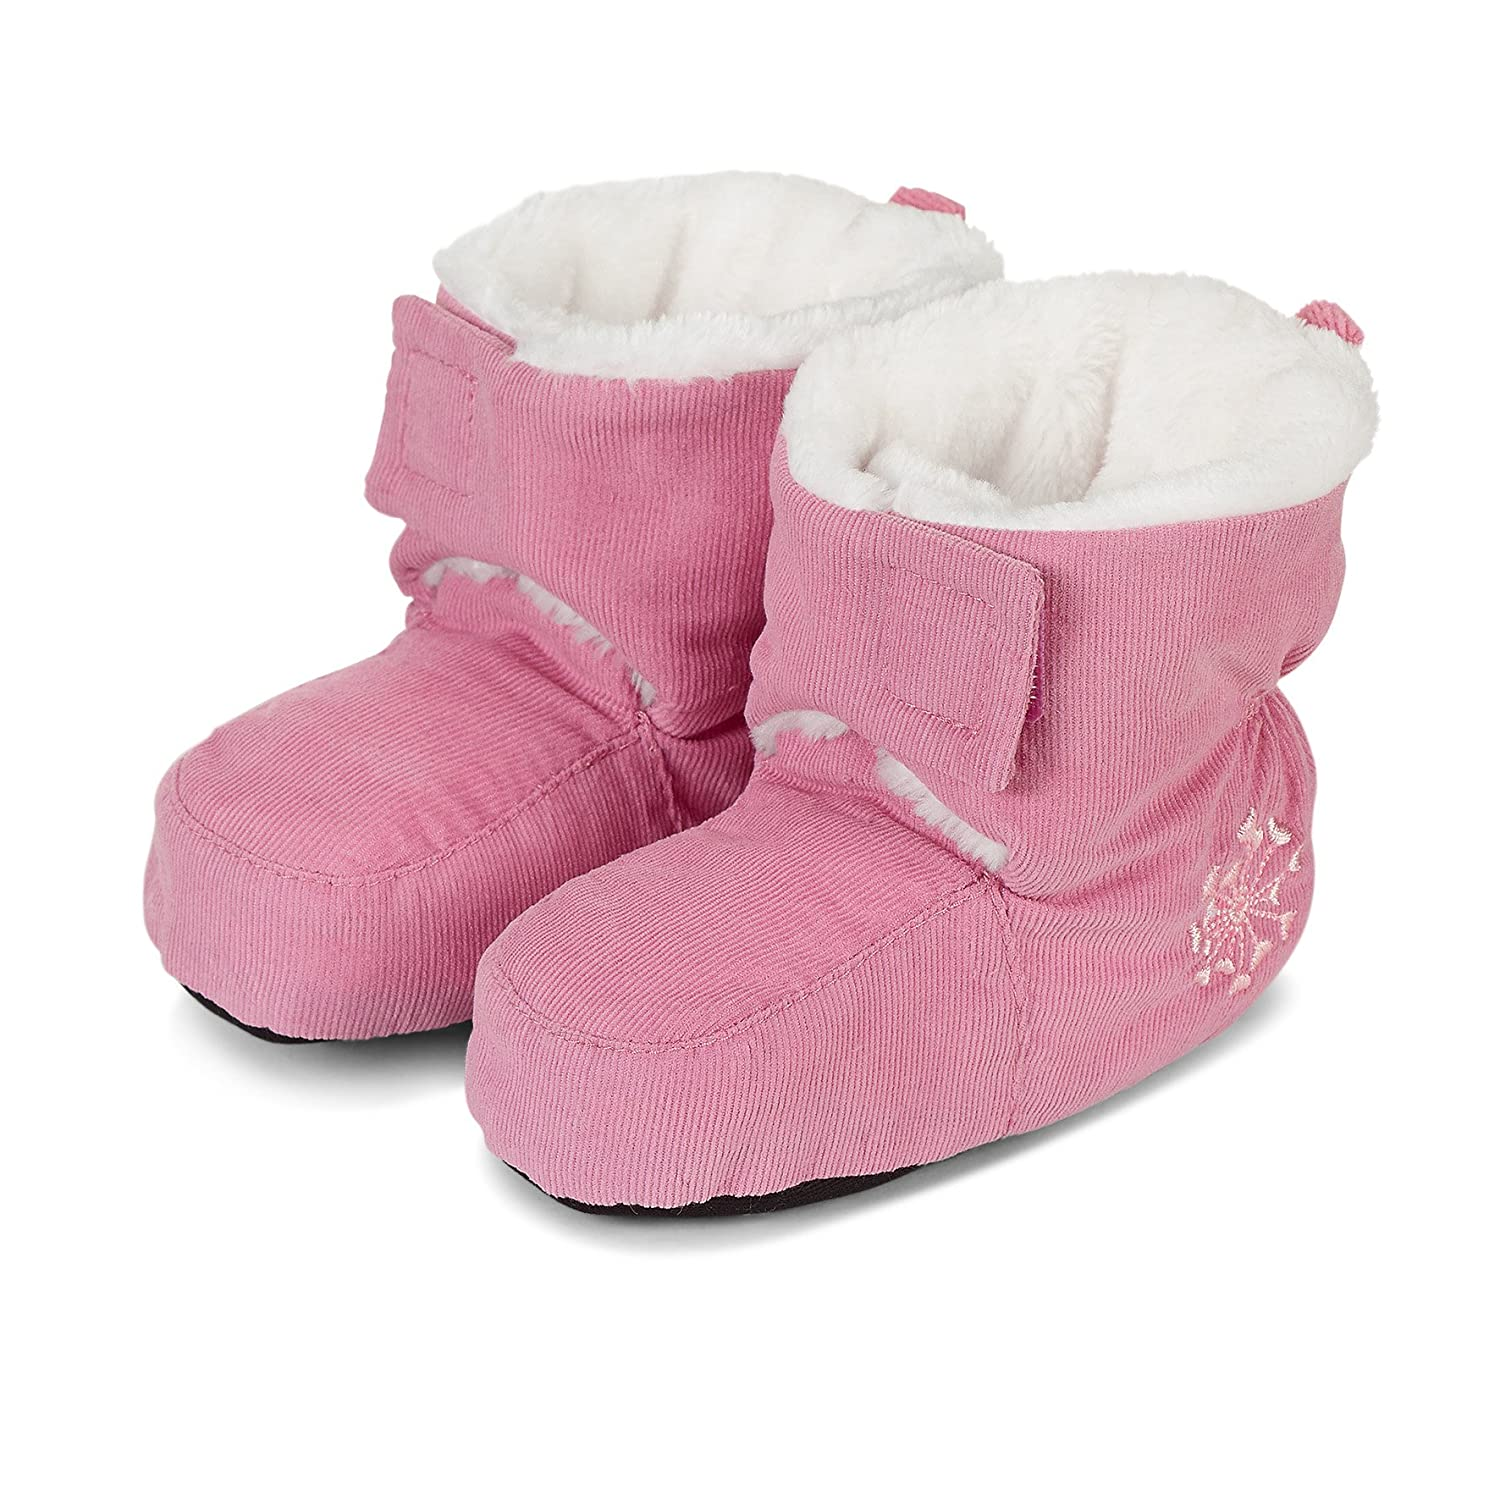 Sterntaler Baby-Schuh, Bottines bébé Fille Bottines bébé Fille 5101800